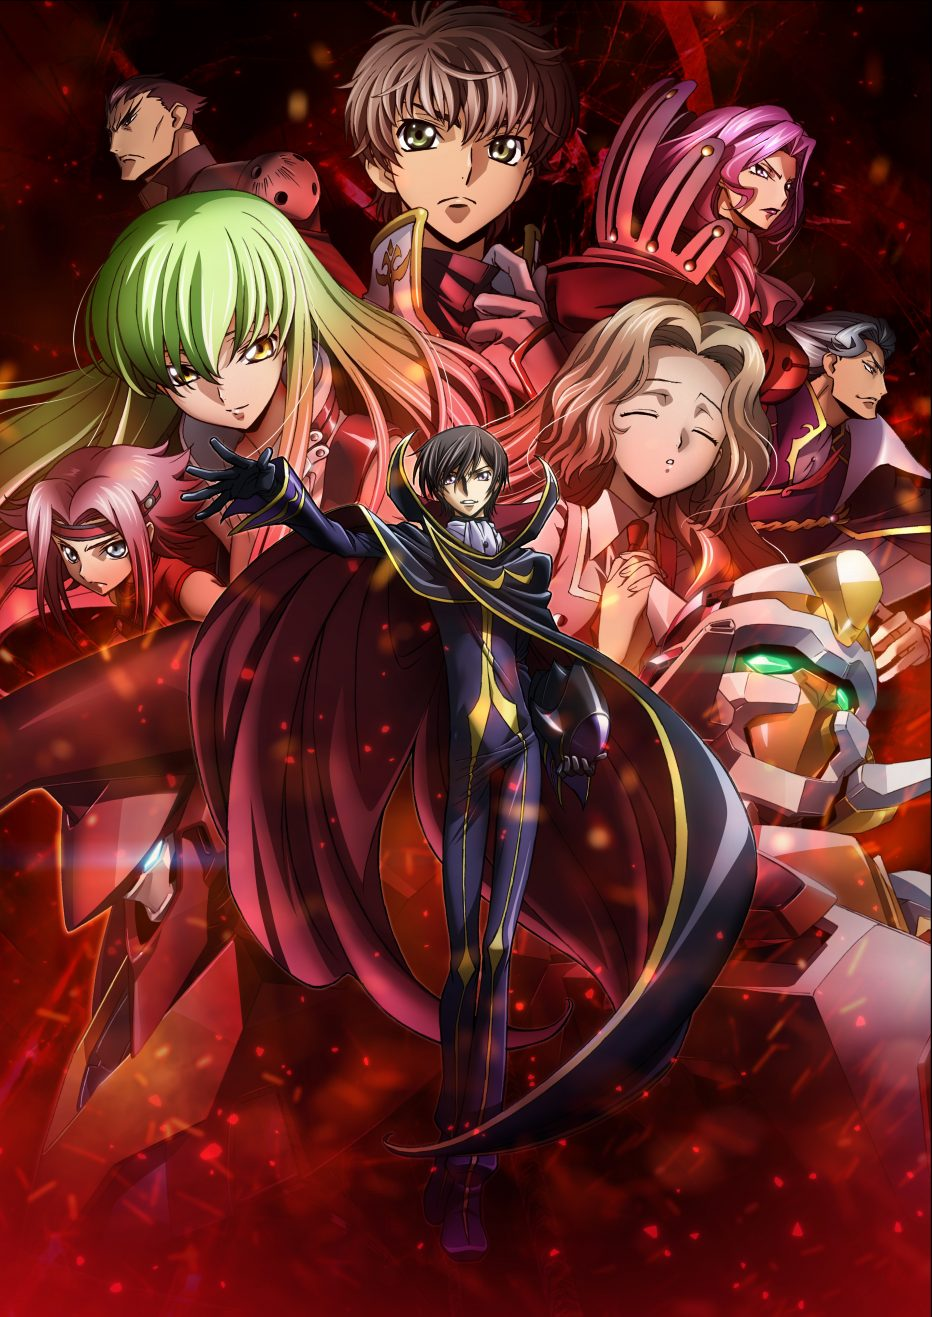 Code Geass: Lelouch of the Rebellion I: Initiation – In cinemas soon